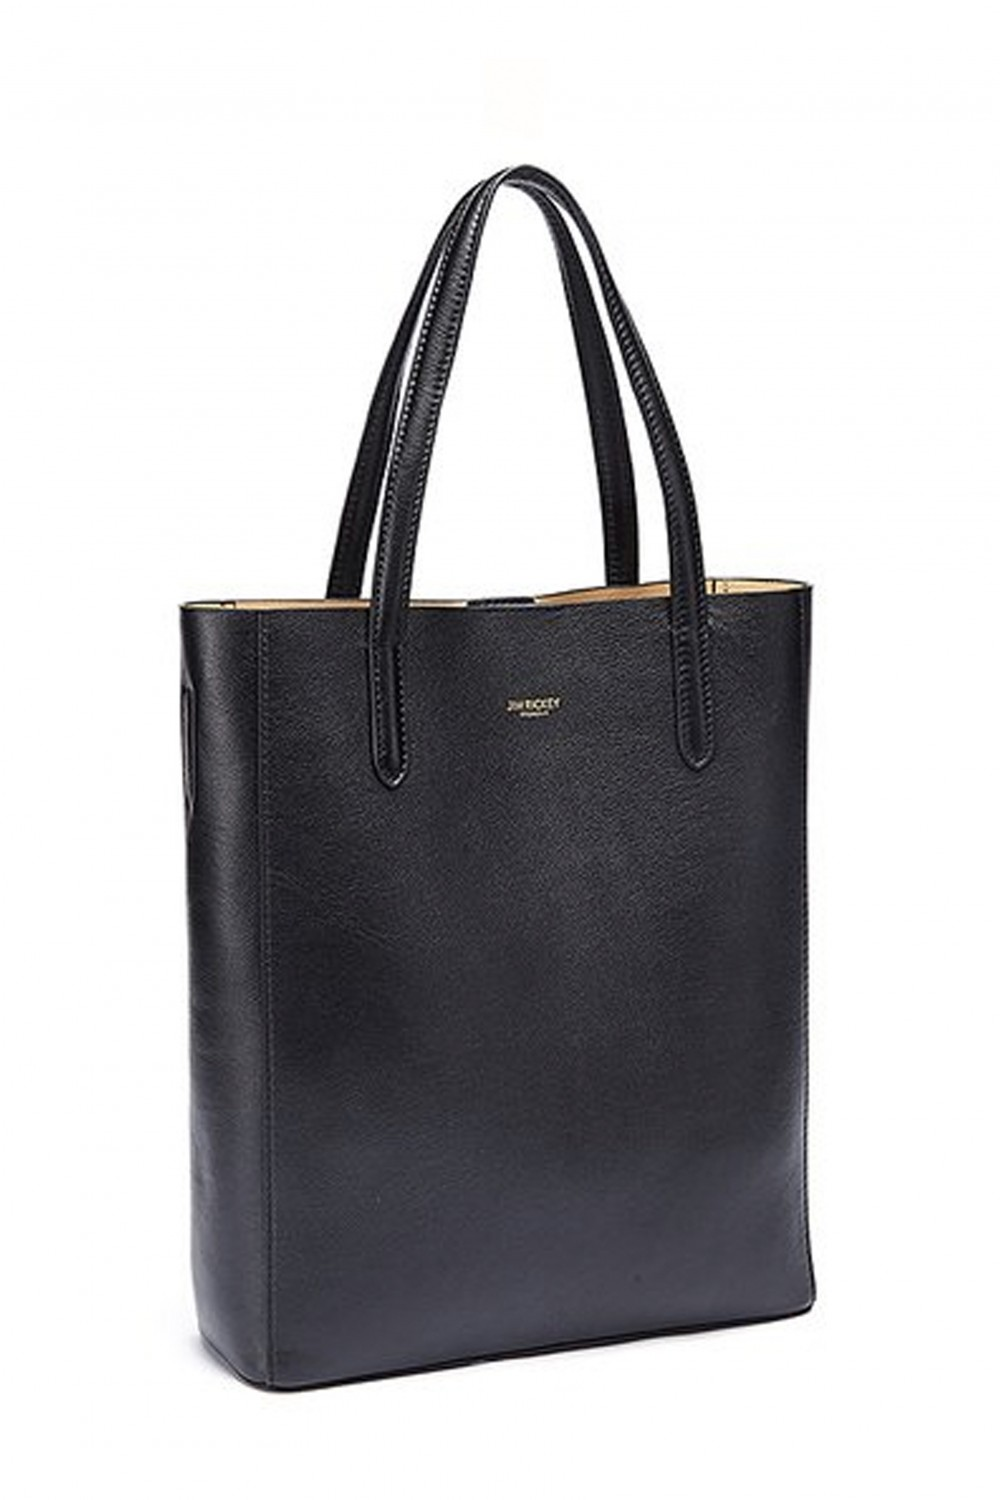 Jim Rickey Ann Mini Shopper Black